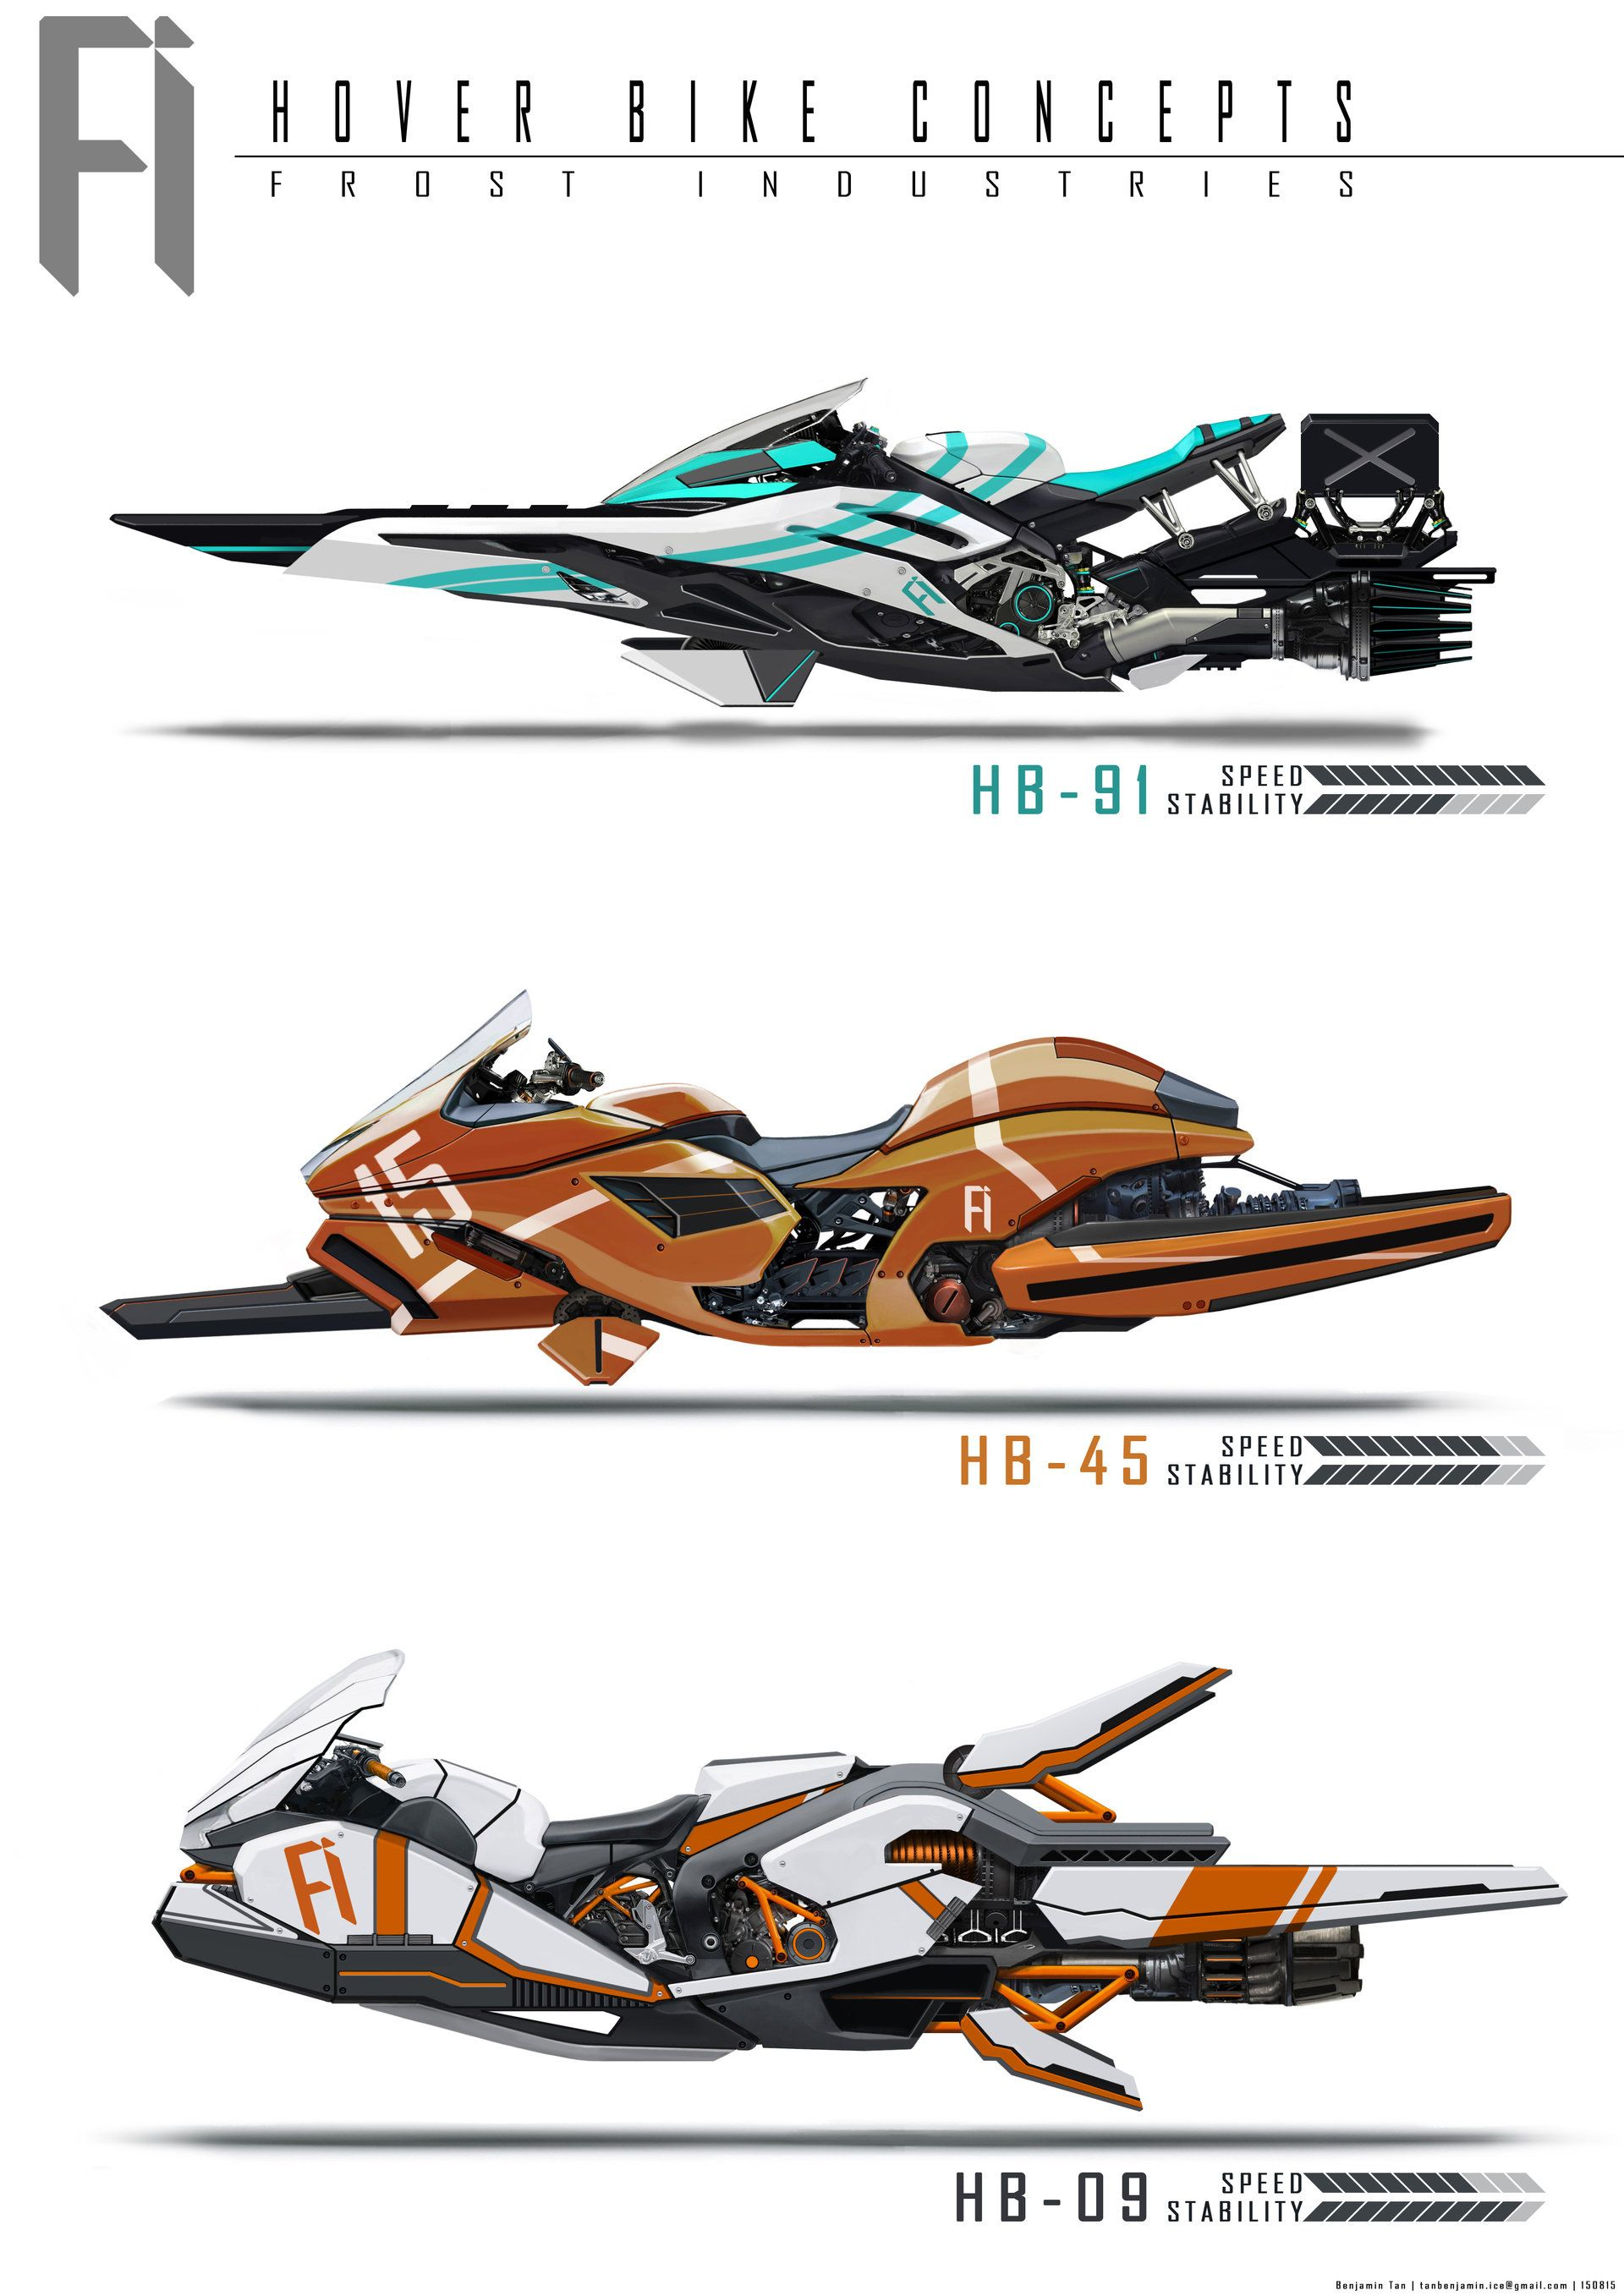 Some side views of hoverbikes might do one in 3d in future